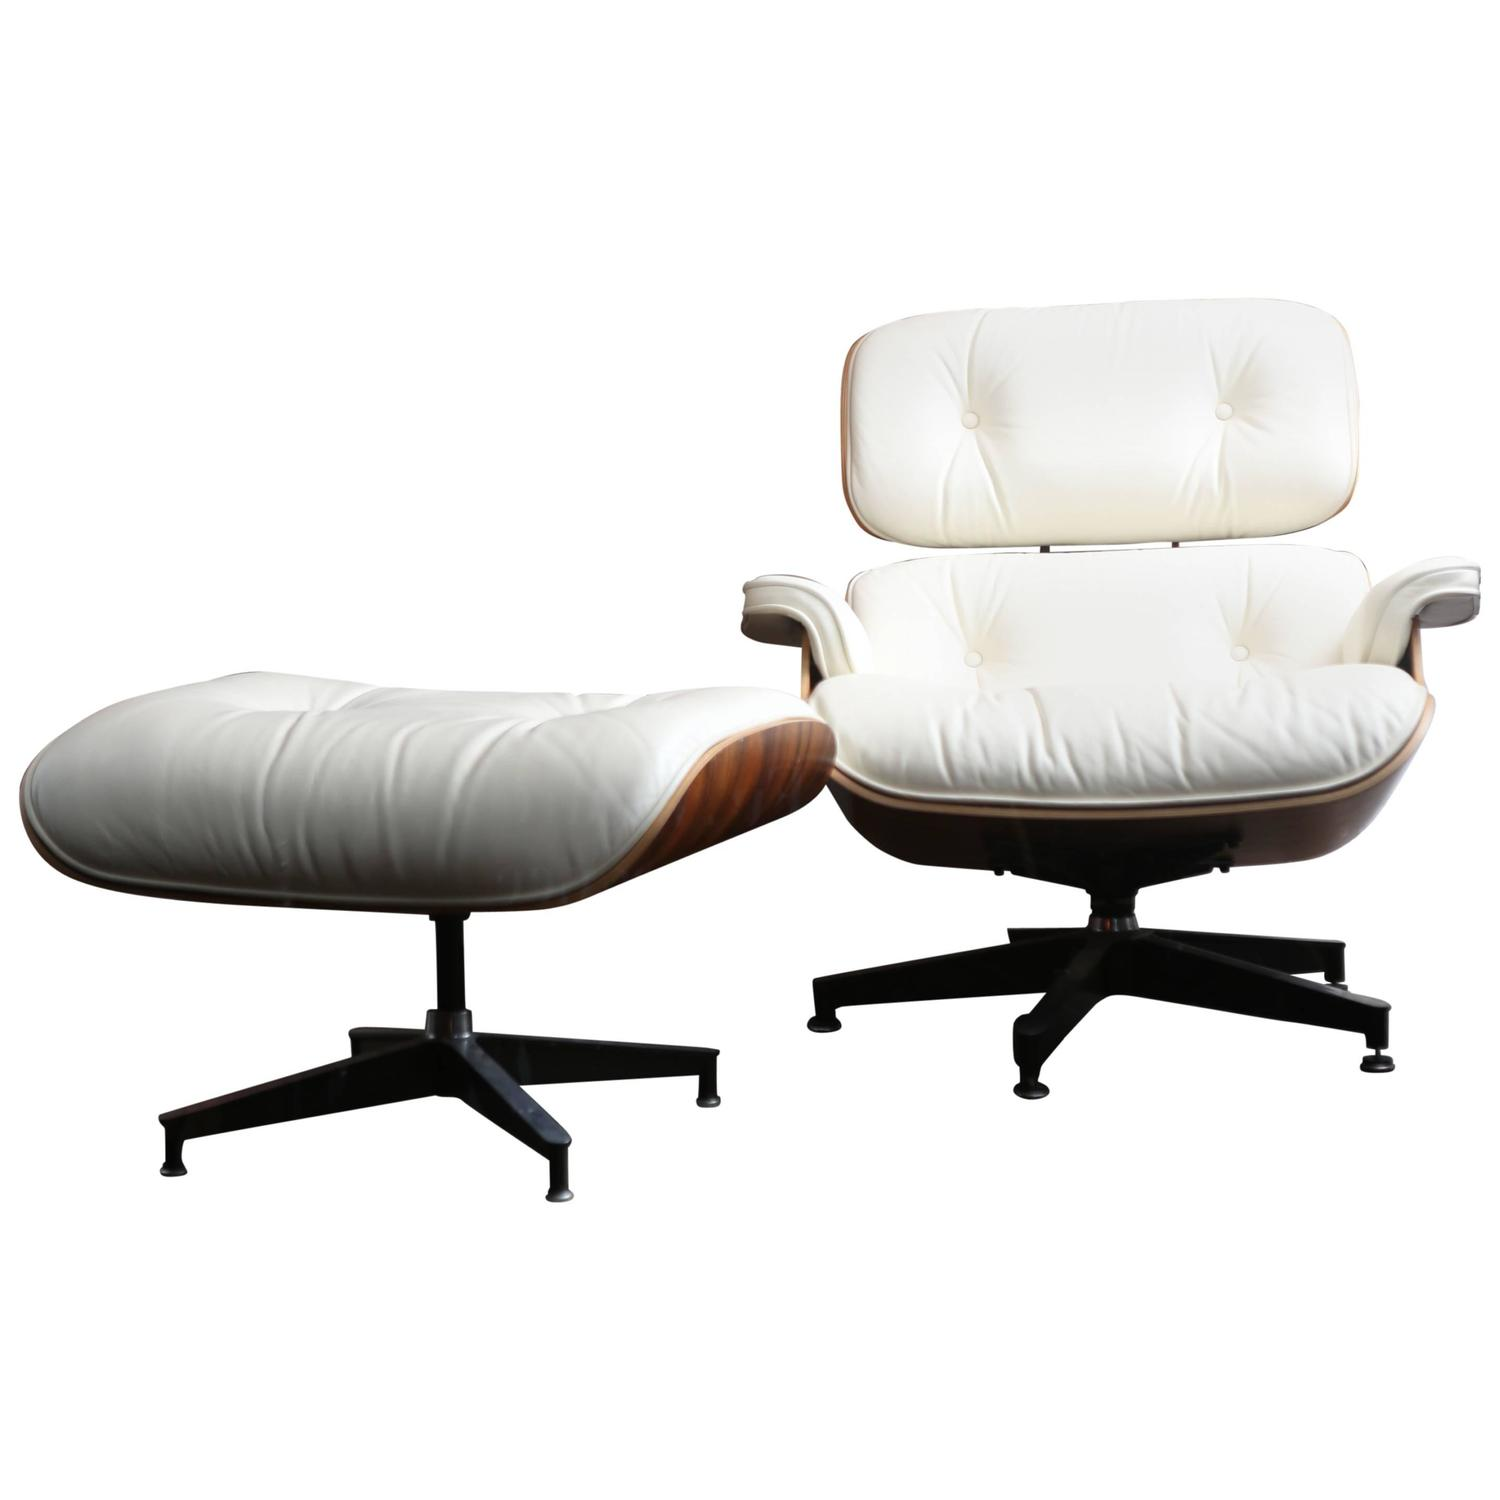 eames lounge chair and ottoman at 1stdibs. Black Bedroom Furniture Sets. Home Design Ideas